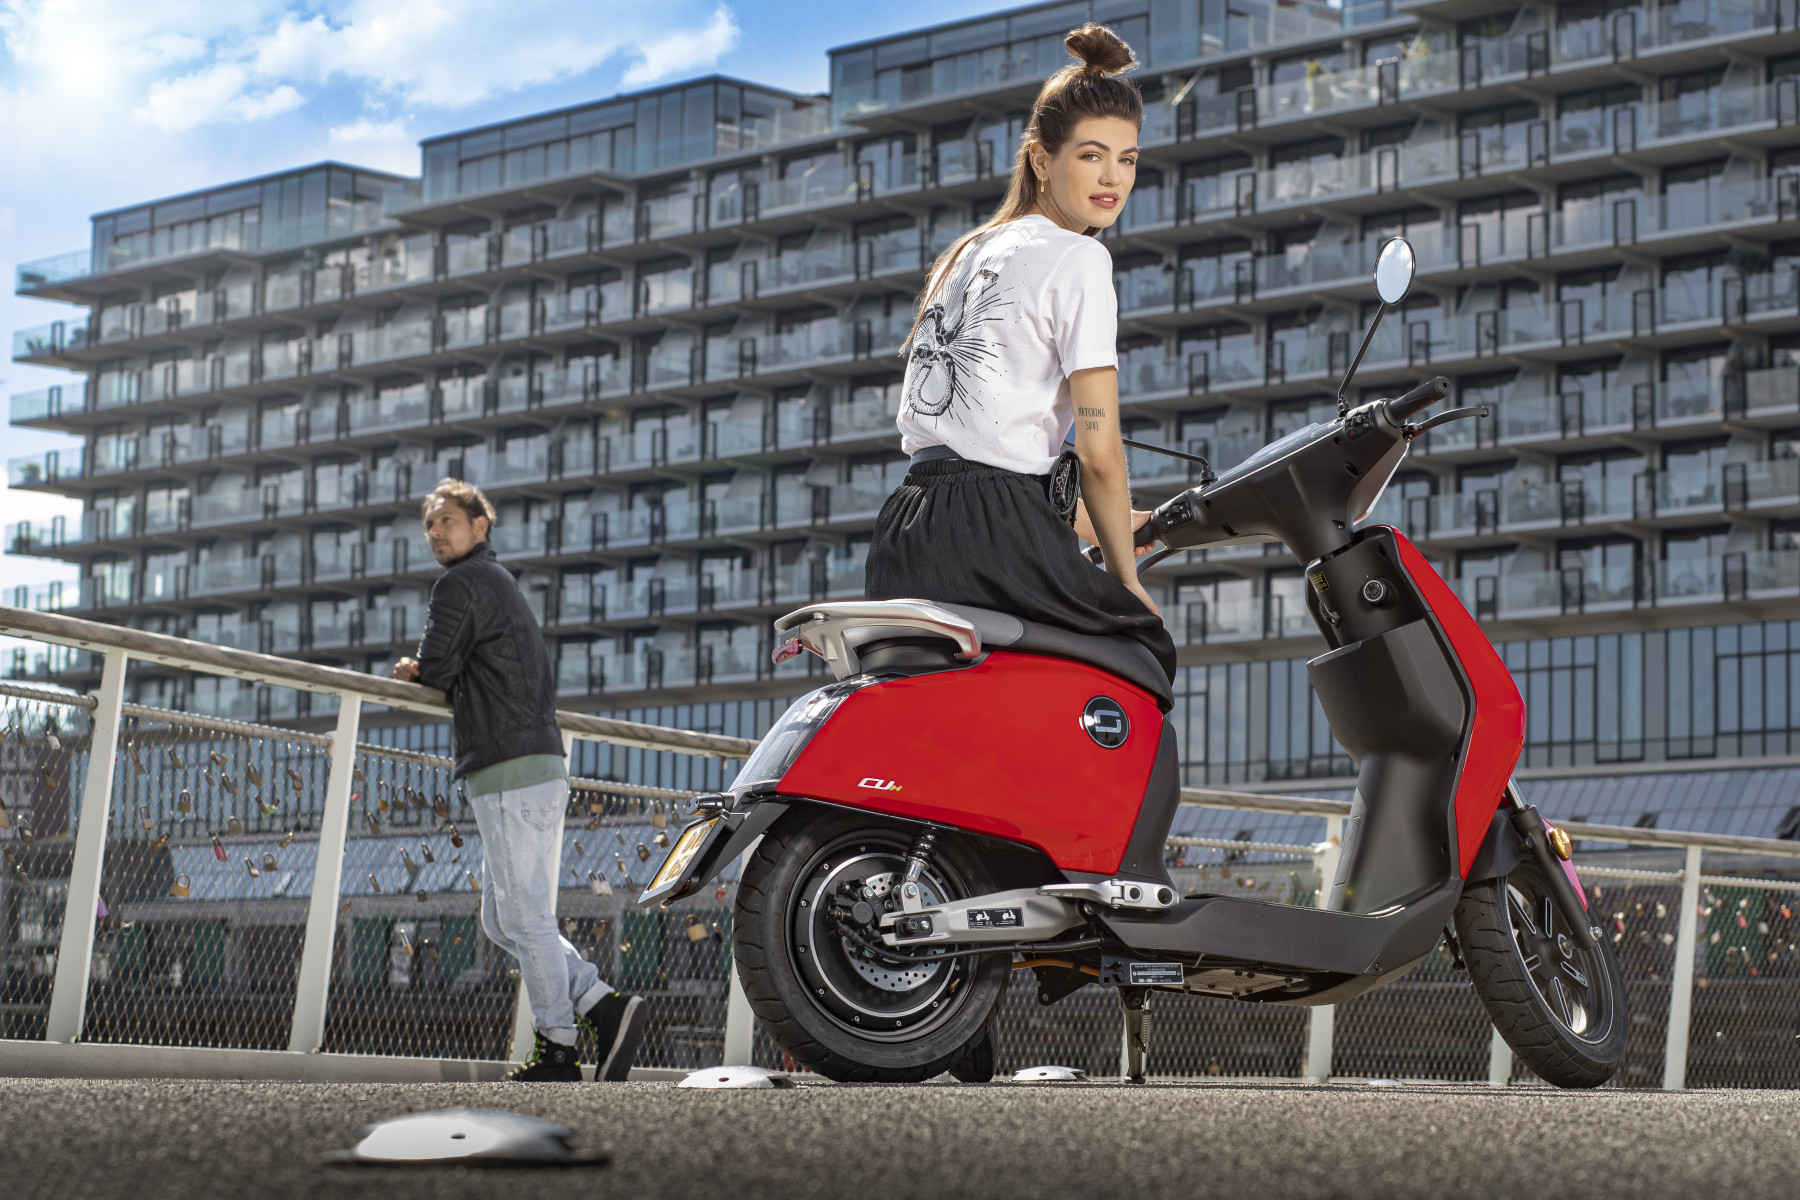 Super Soco CUx electric scooter lifestyle image